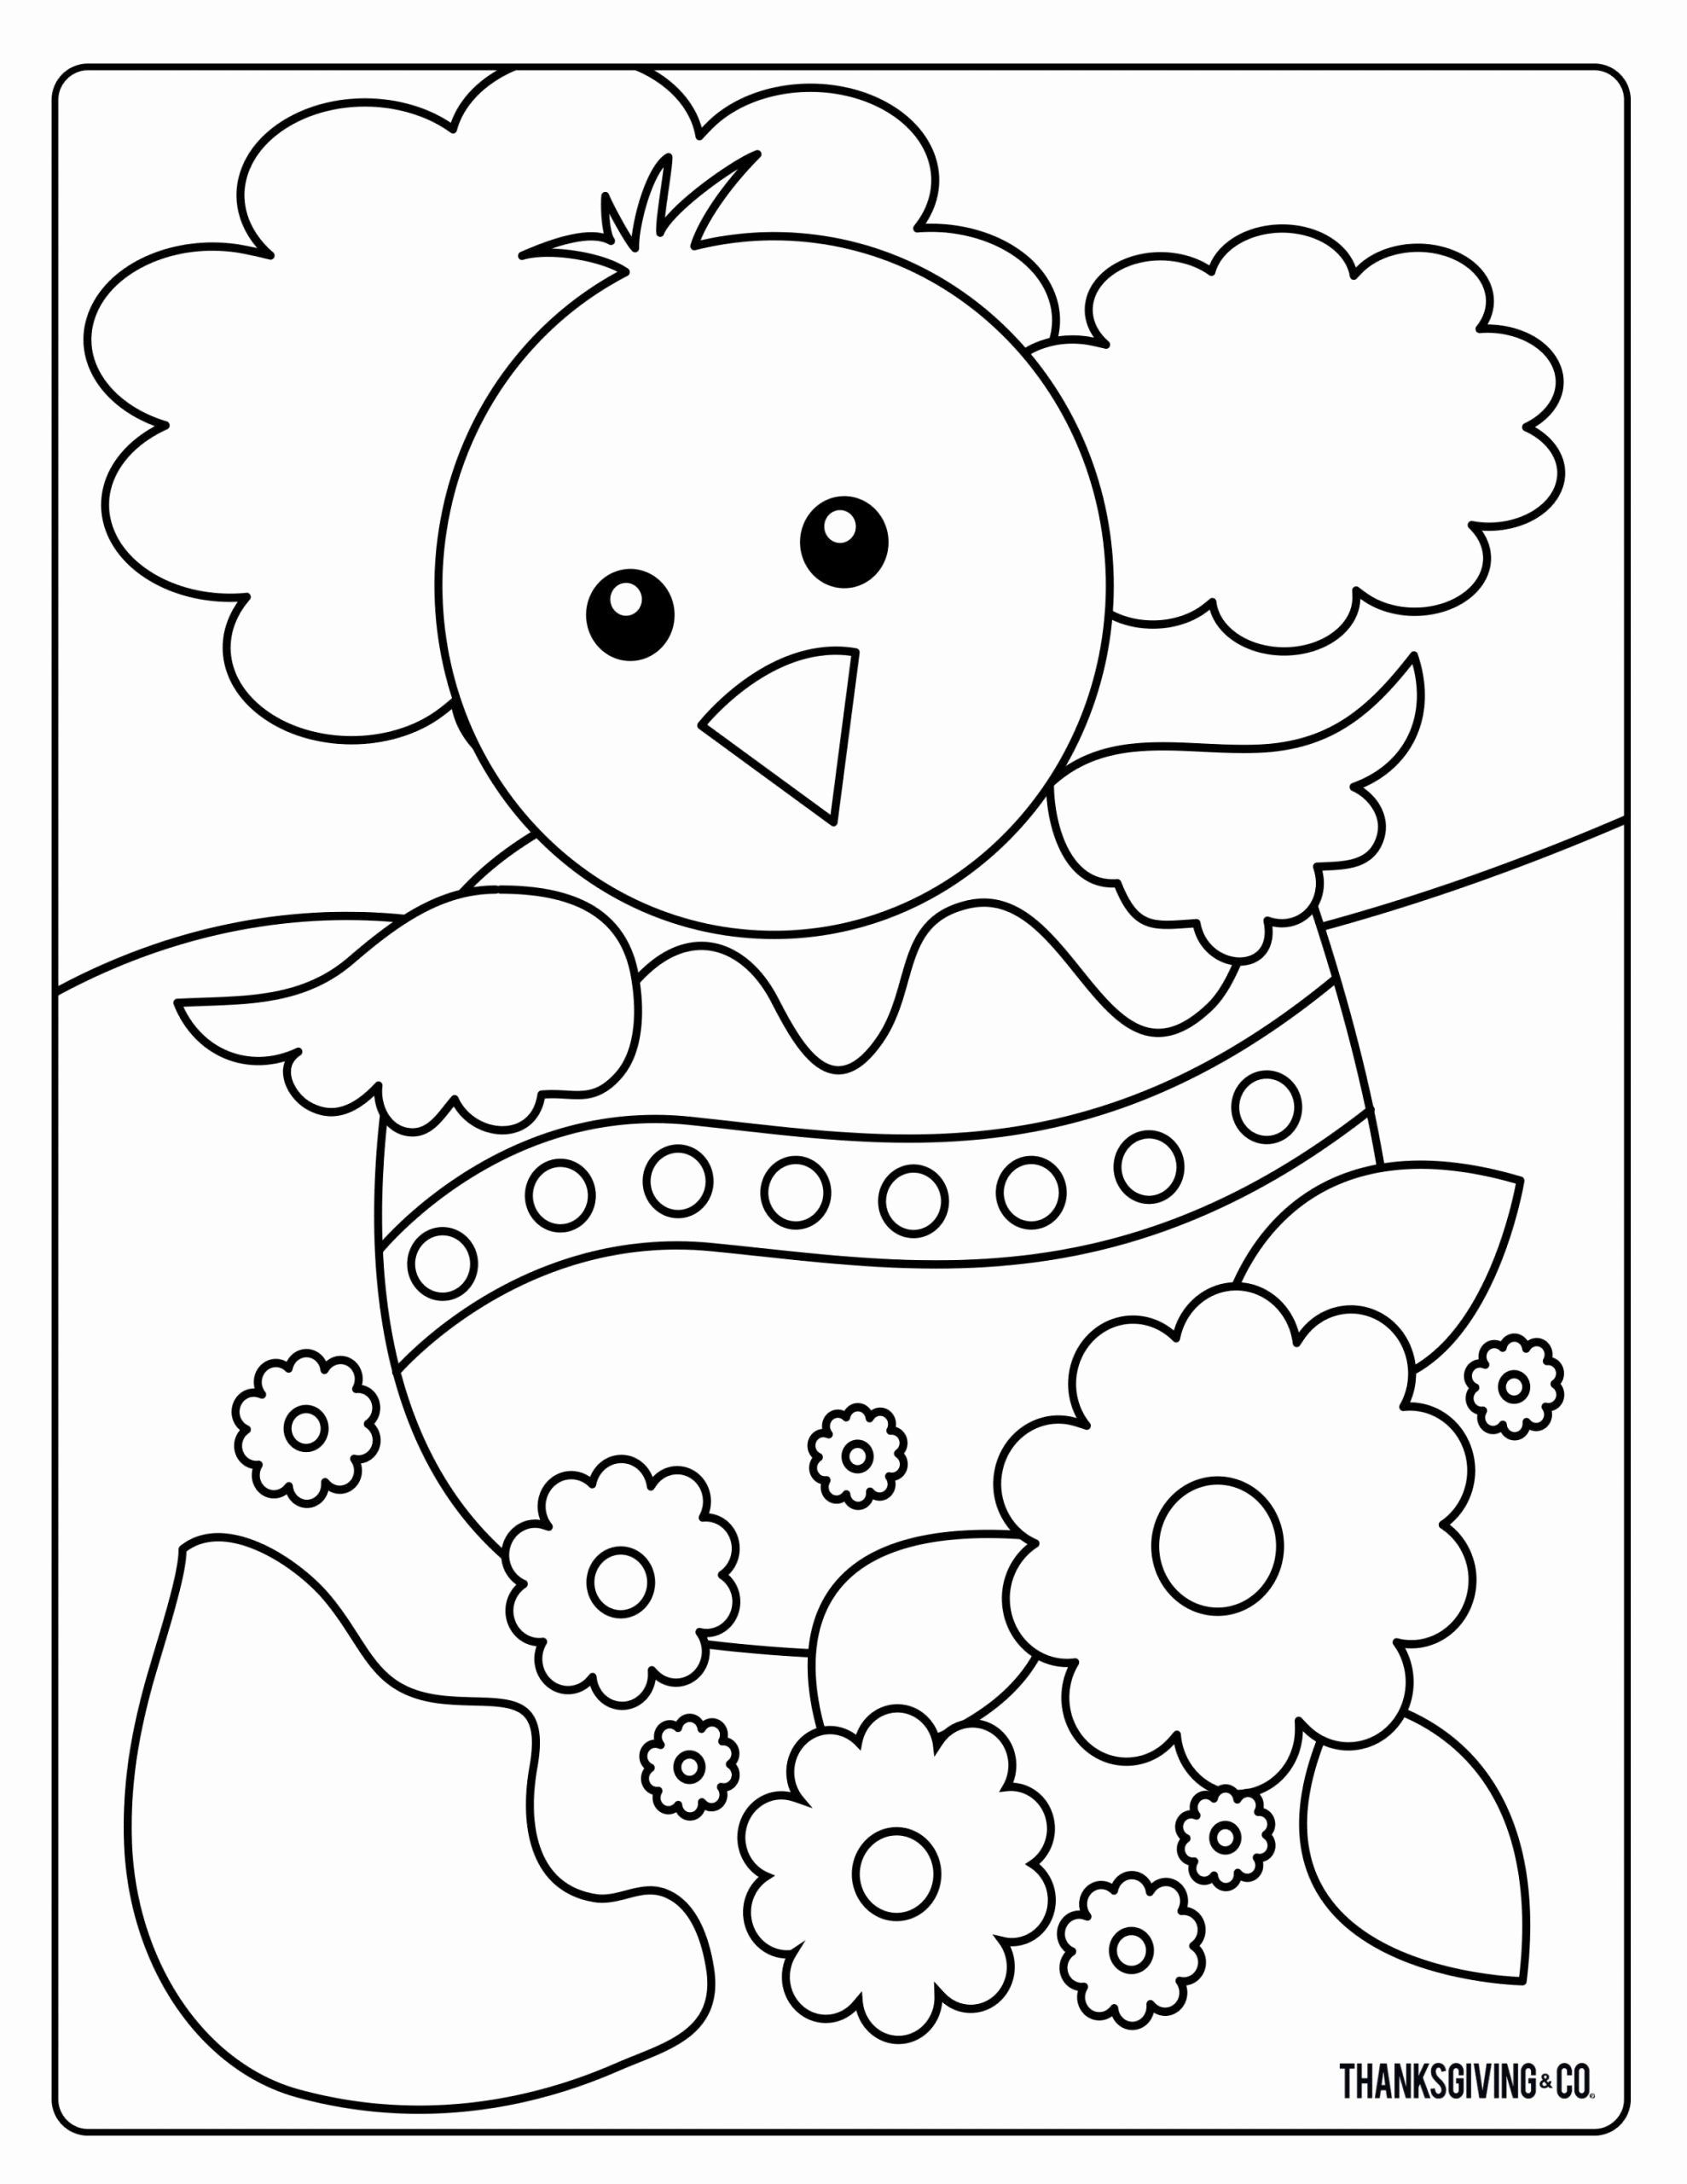 Free Printable Spring Coloring Pages Awesome Coloring Pages Ladybug Coloring Blank In Style In 2020 Easter Coloring Book Halloween Coloring Pages Bunny Coloring Pages